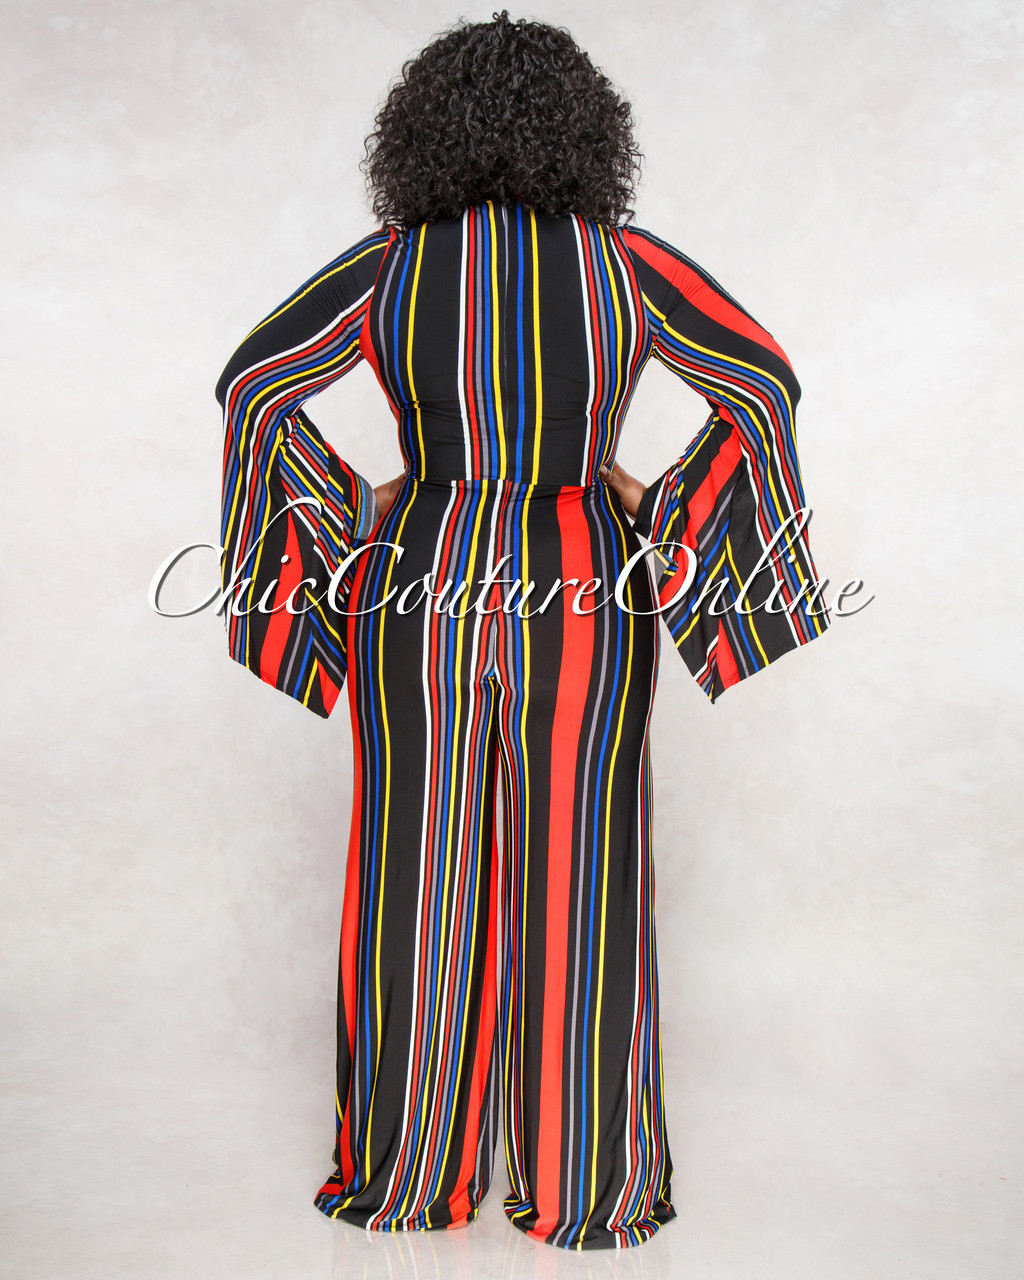 ed5d72c3ac81 Sarena Black Red Yellow Stripes CURVACEOUS Jumpsuit. Price   70.00. Image  1. Larger   More Photos